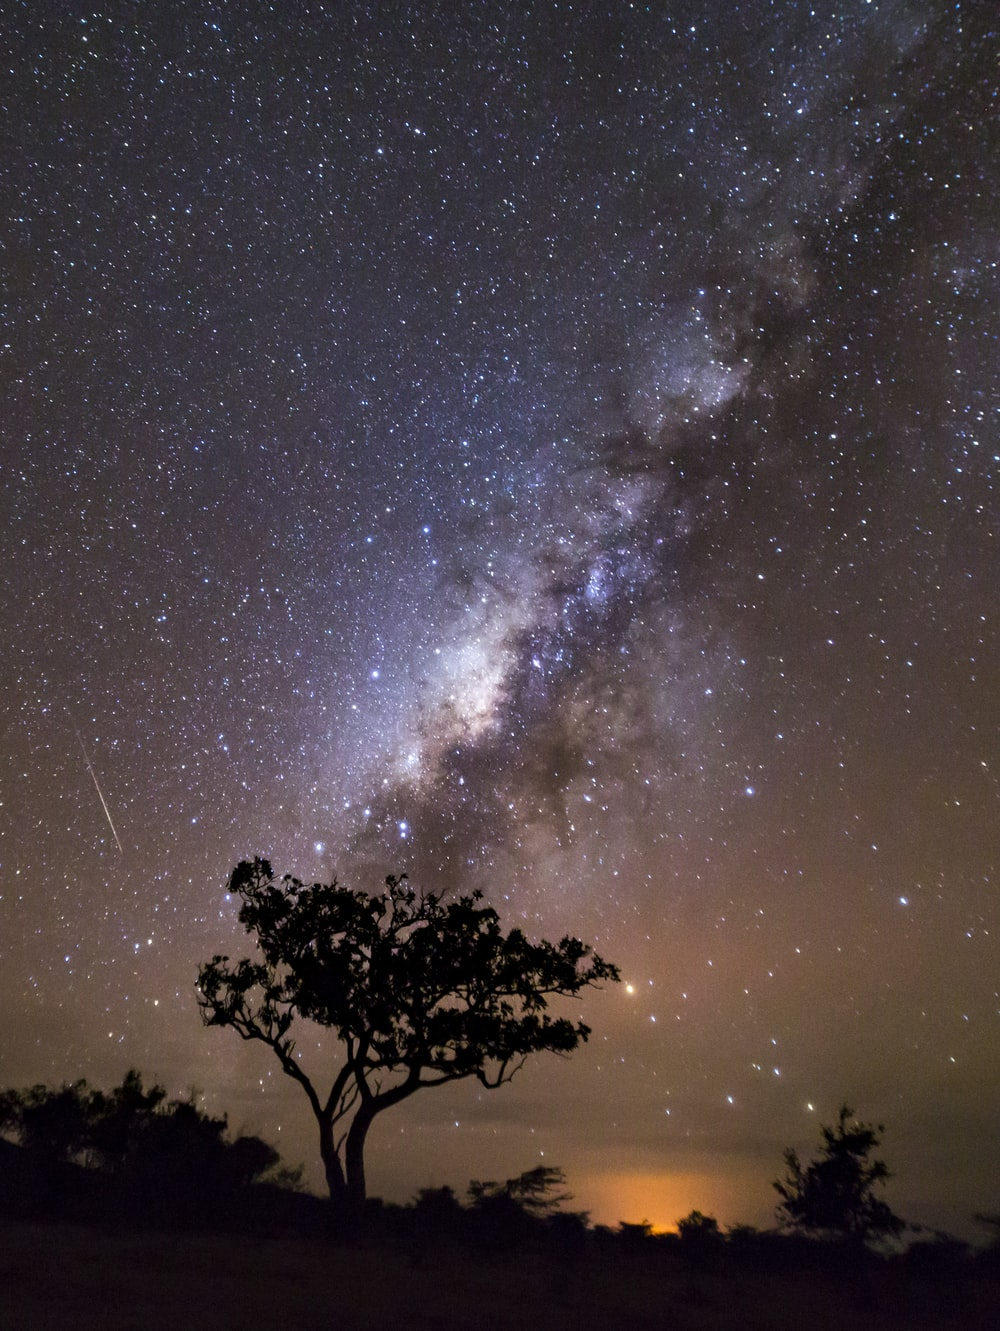 silhouette photo of tree with milky way background